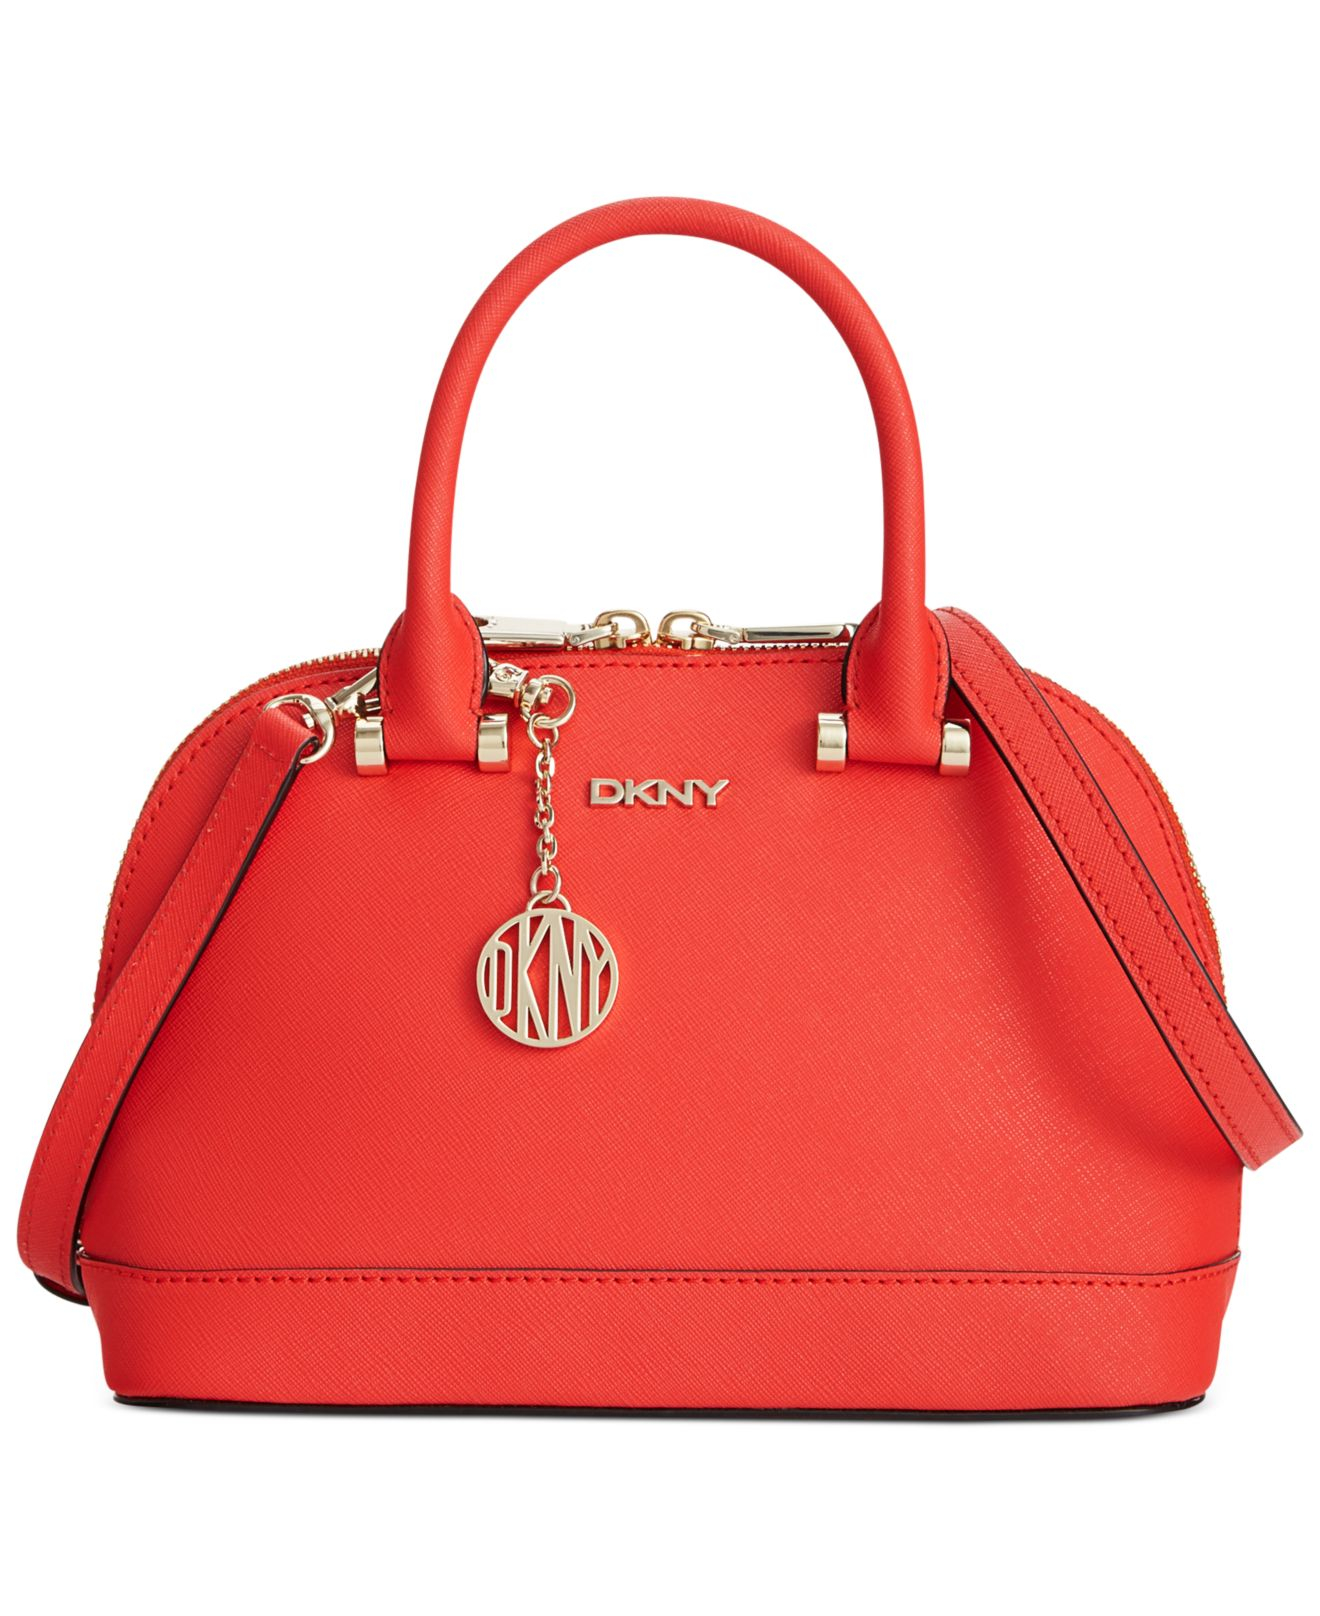 dkny bryant park saffiano leather mini round crossbody in red coral lyst. Black Bedroom Furniture Sets. Home Design Ideas